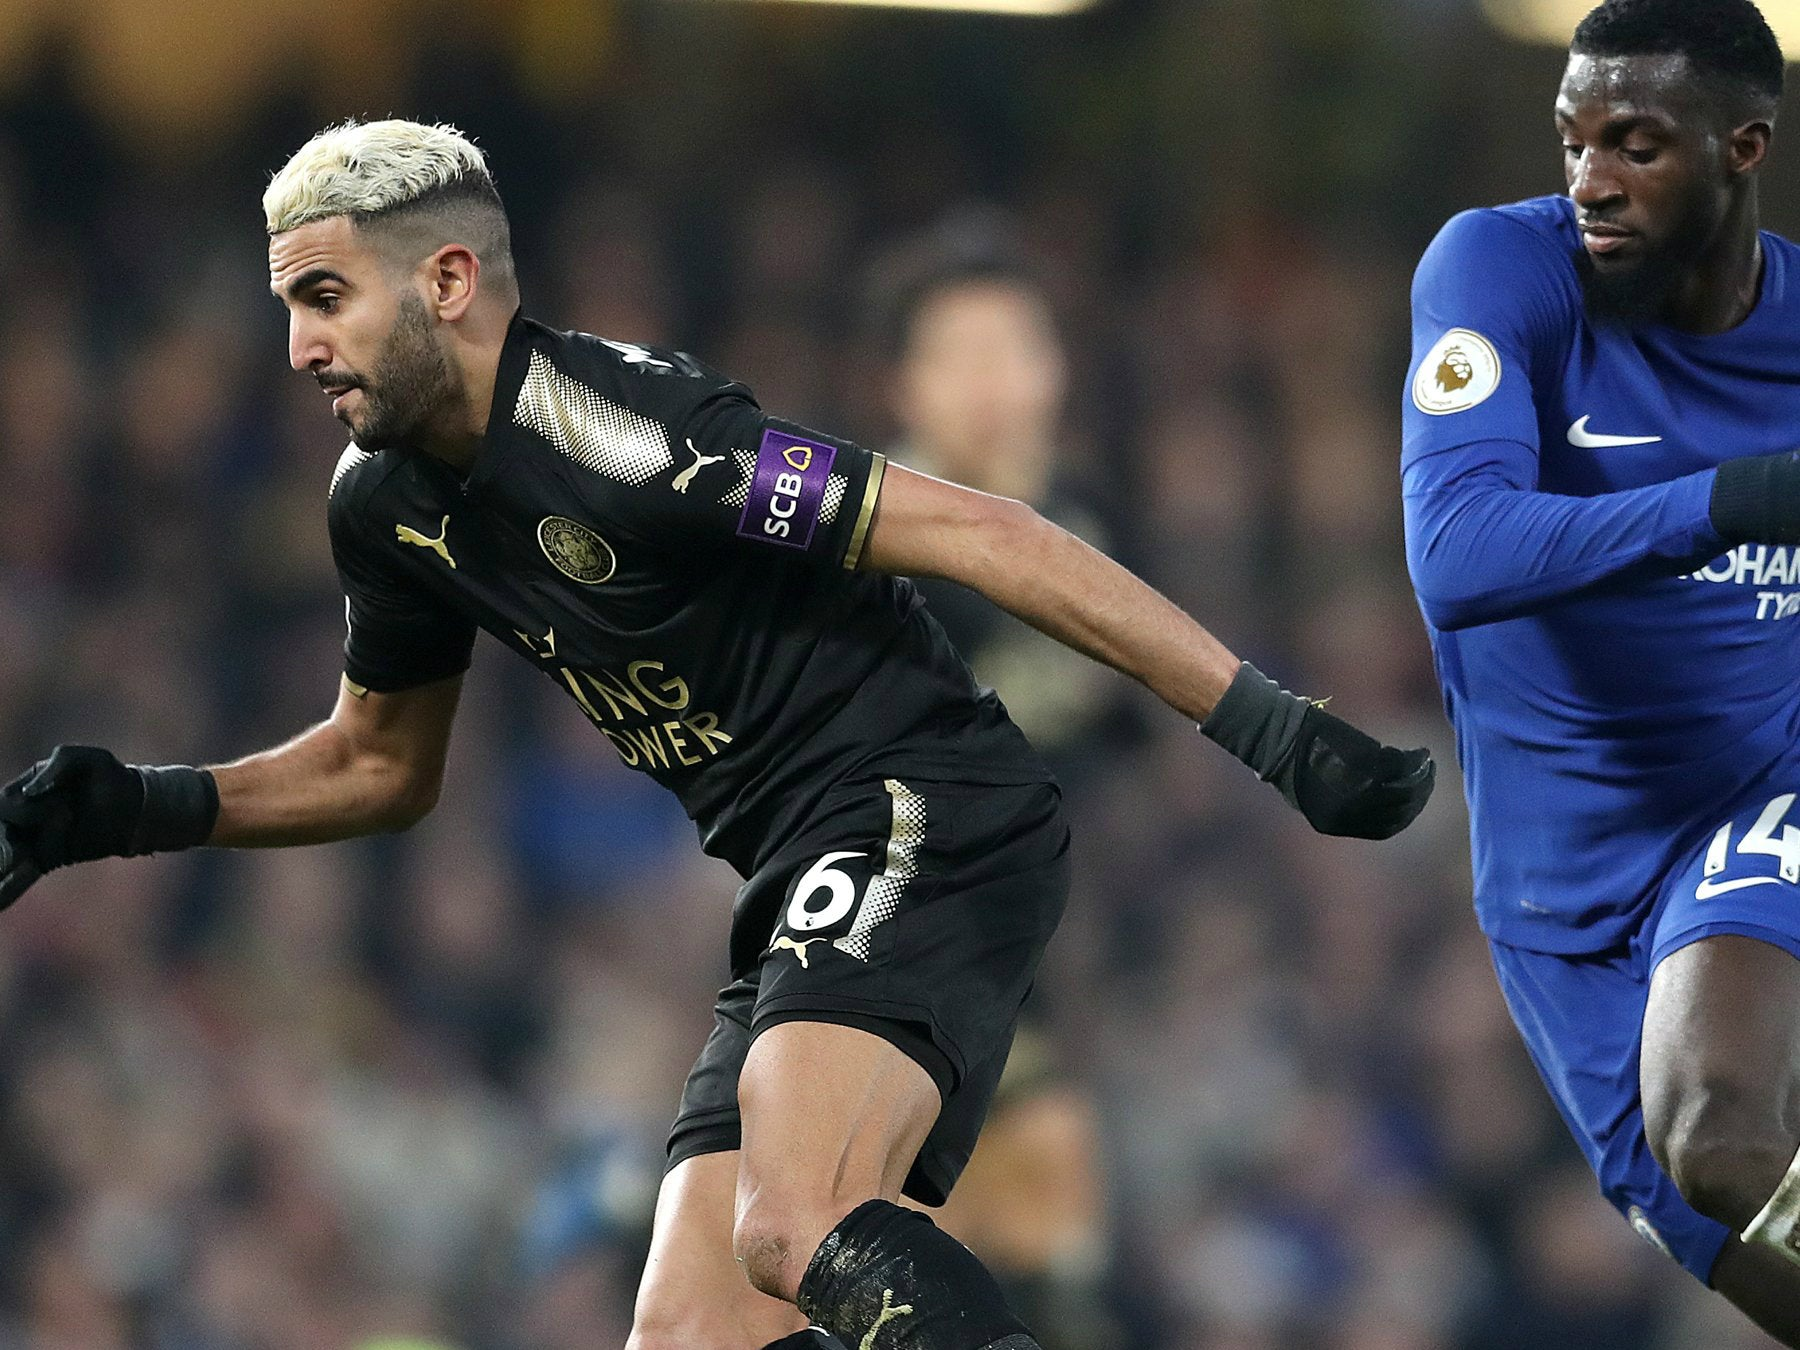 chelsea vs leicester city - HD 1800×1350